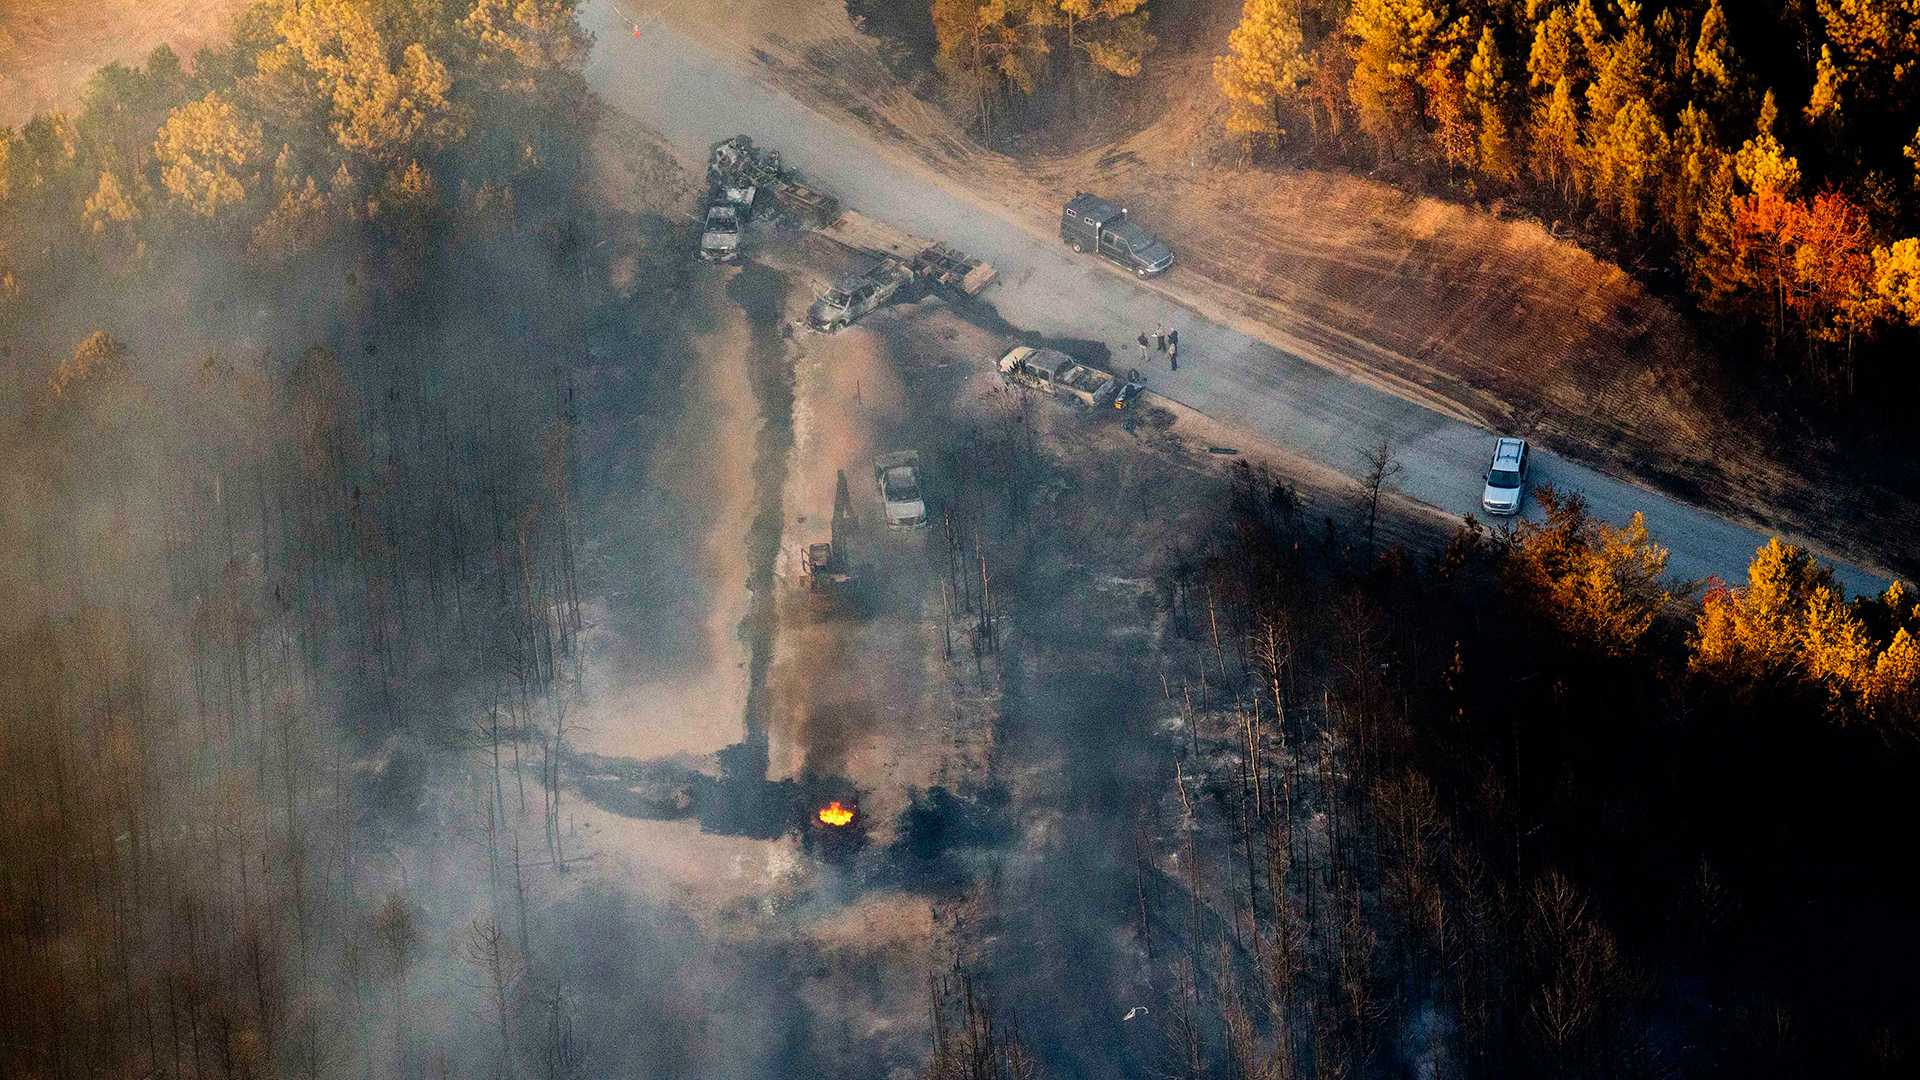 A flame remained visible days after a deadly explosion on the Colonial Pipeline in Alabama.